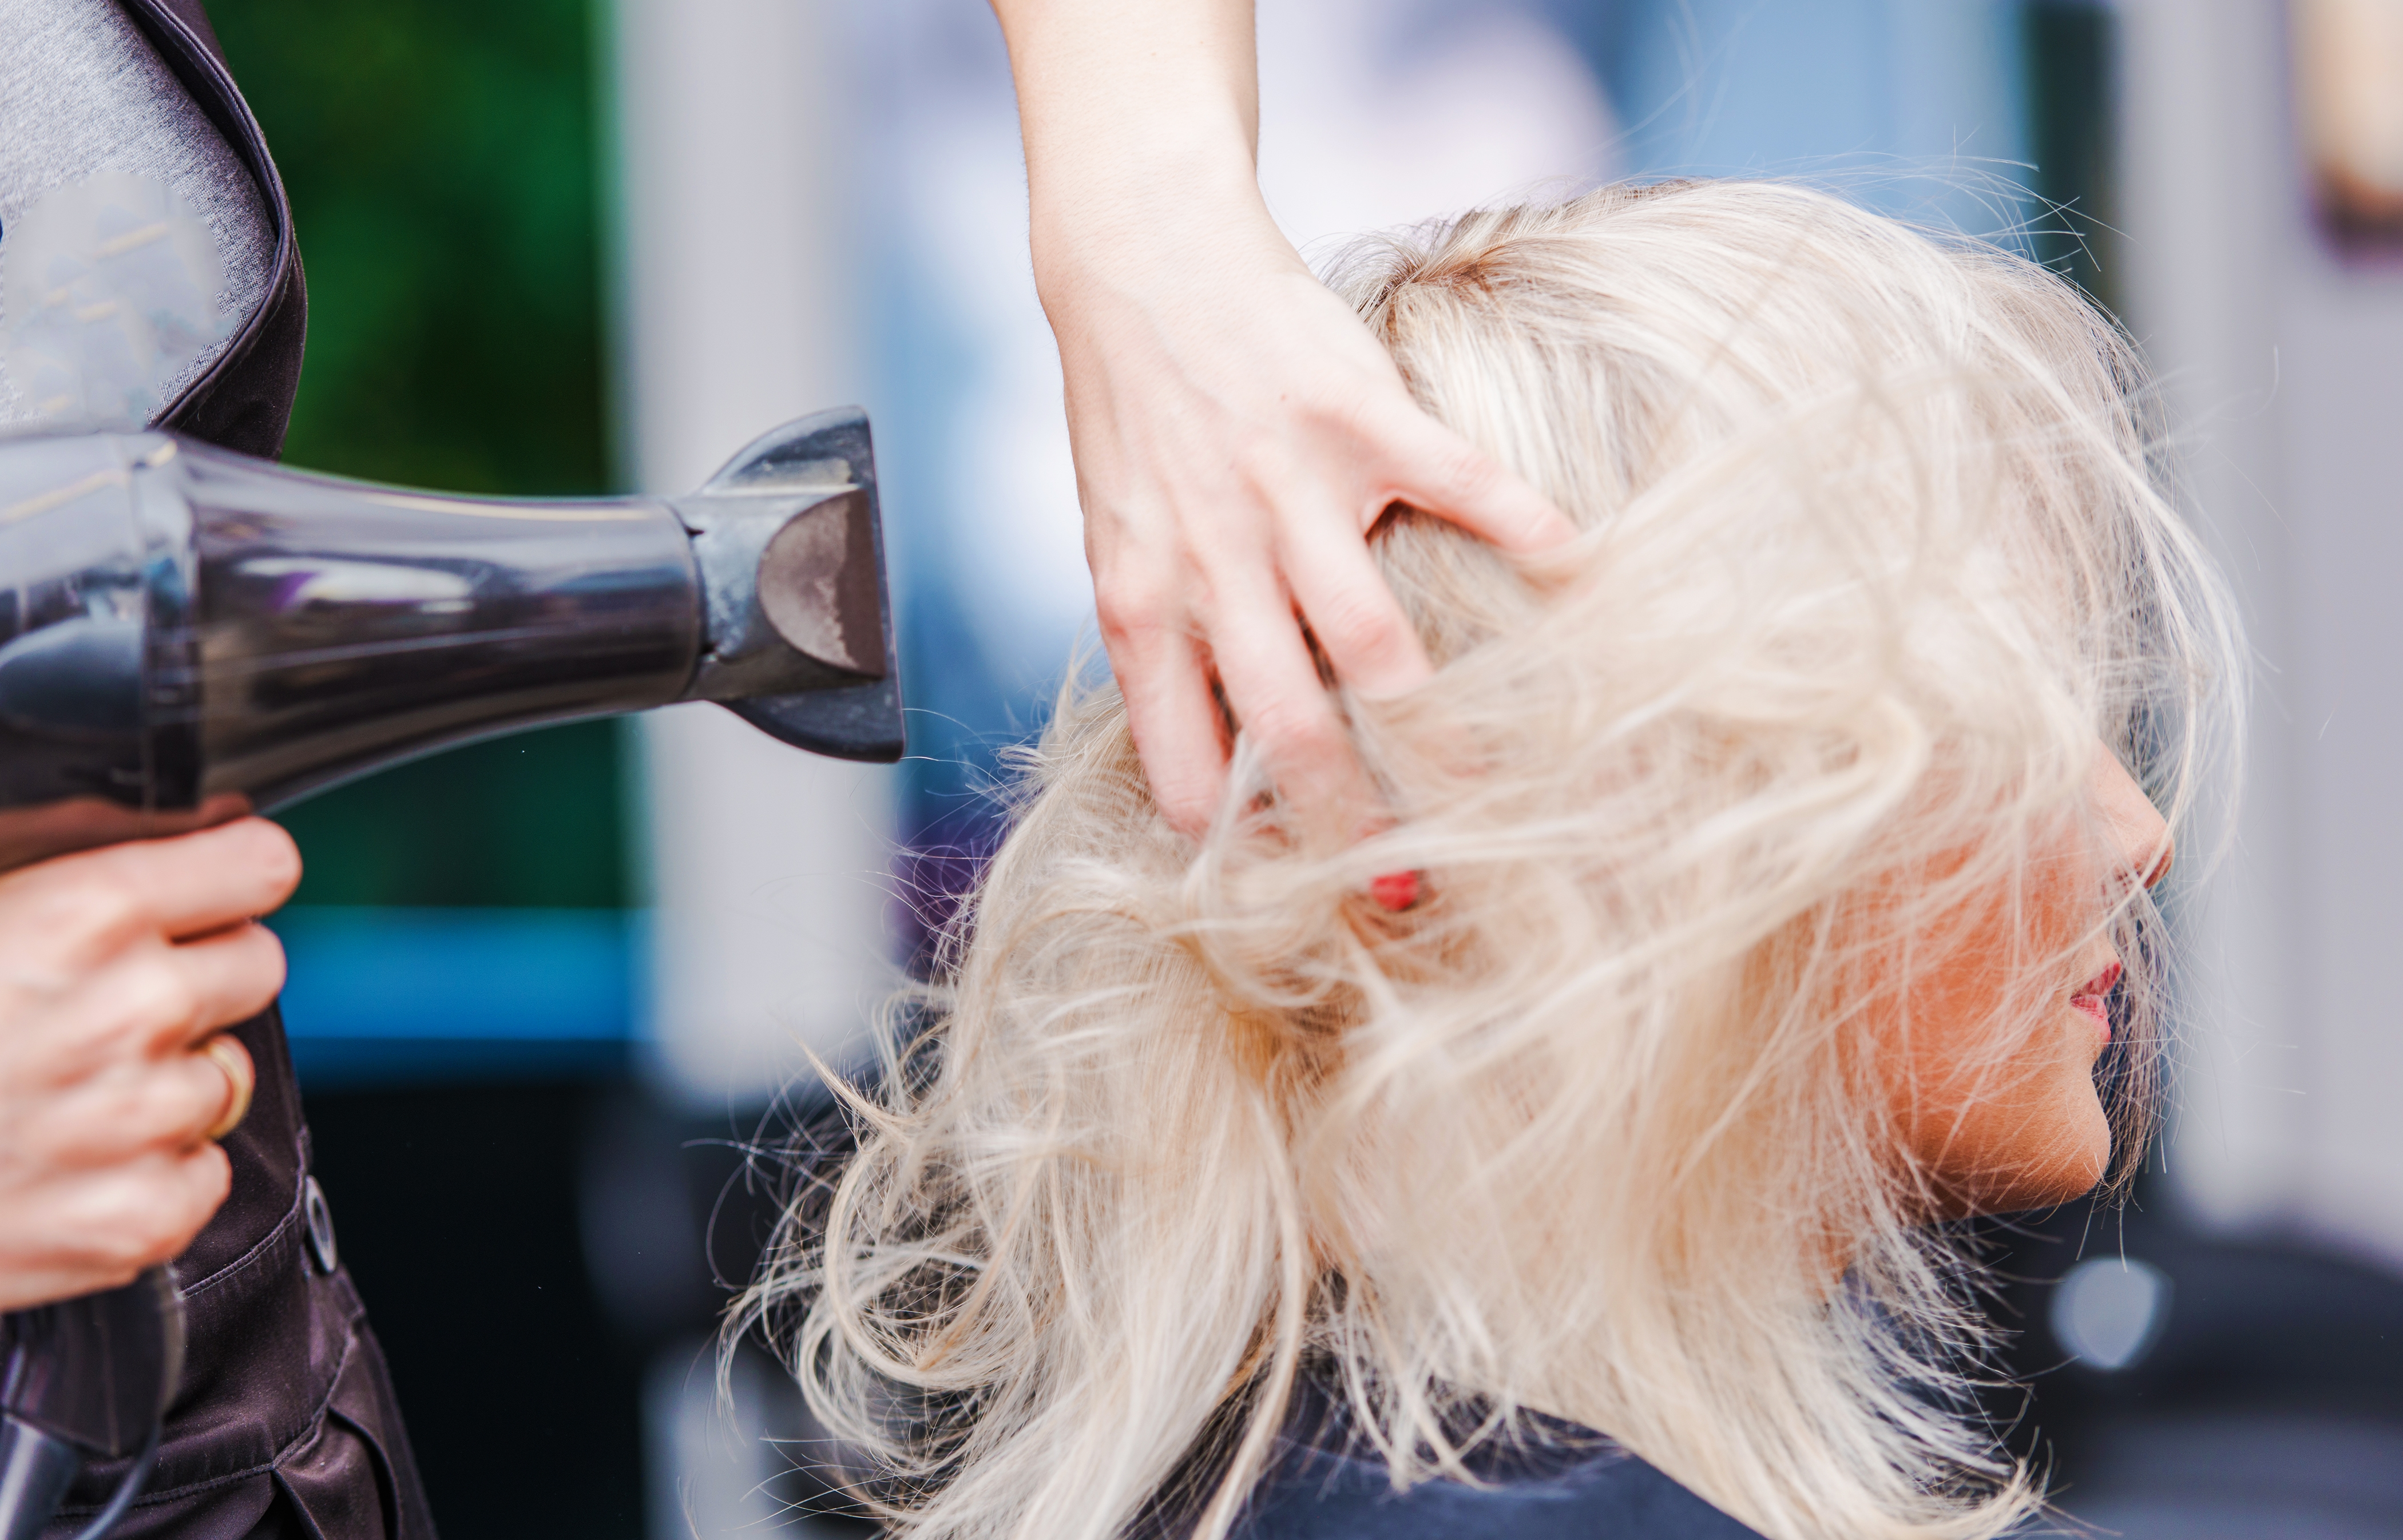 How To Blow Dry Your Own Hair